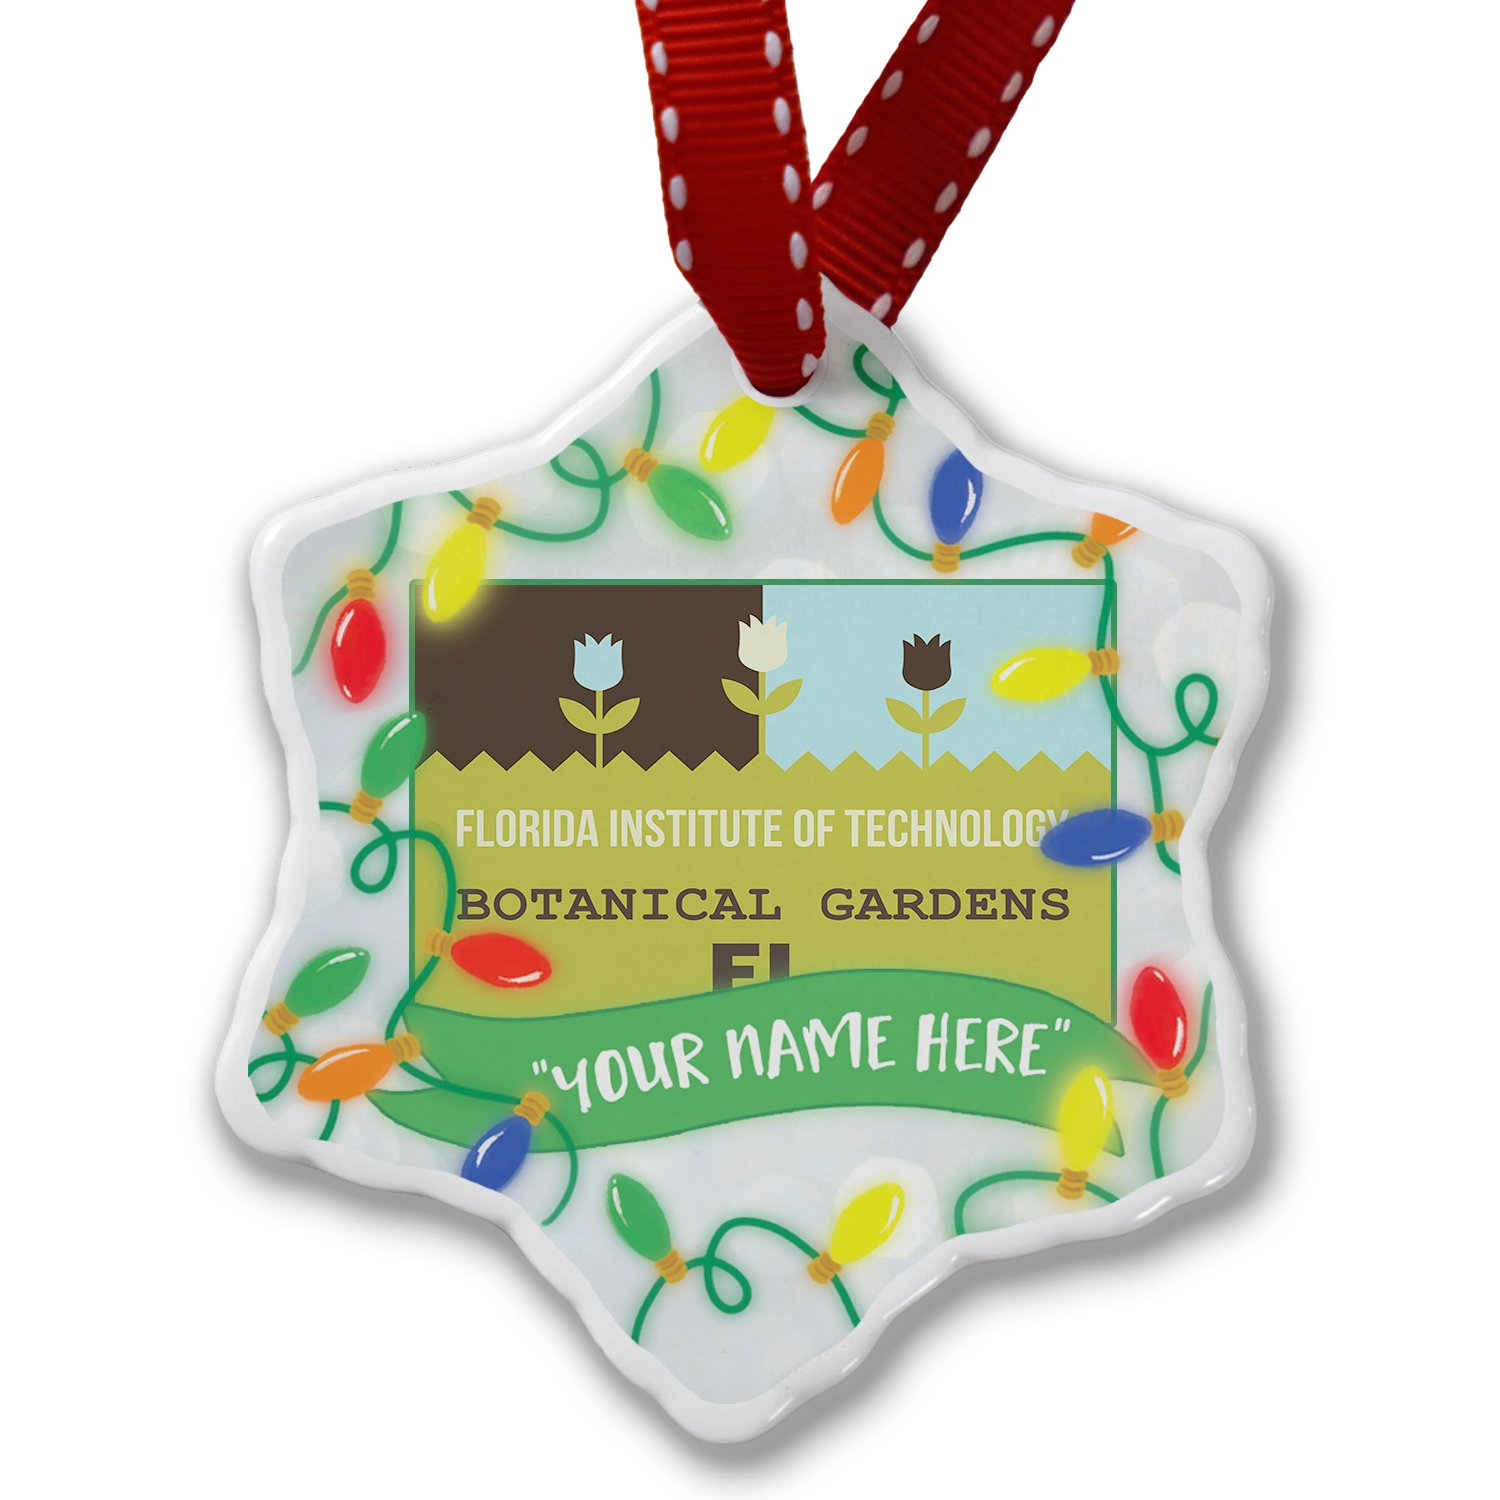 Personalized Name Christmas Ornament, US Gardens Florida Institute of Technology Botanical Gardens - FL NEONBLOND